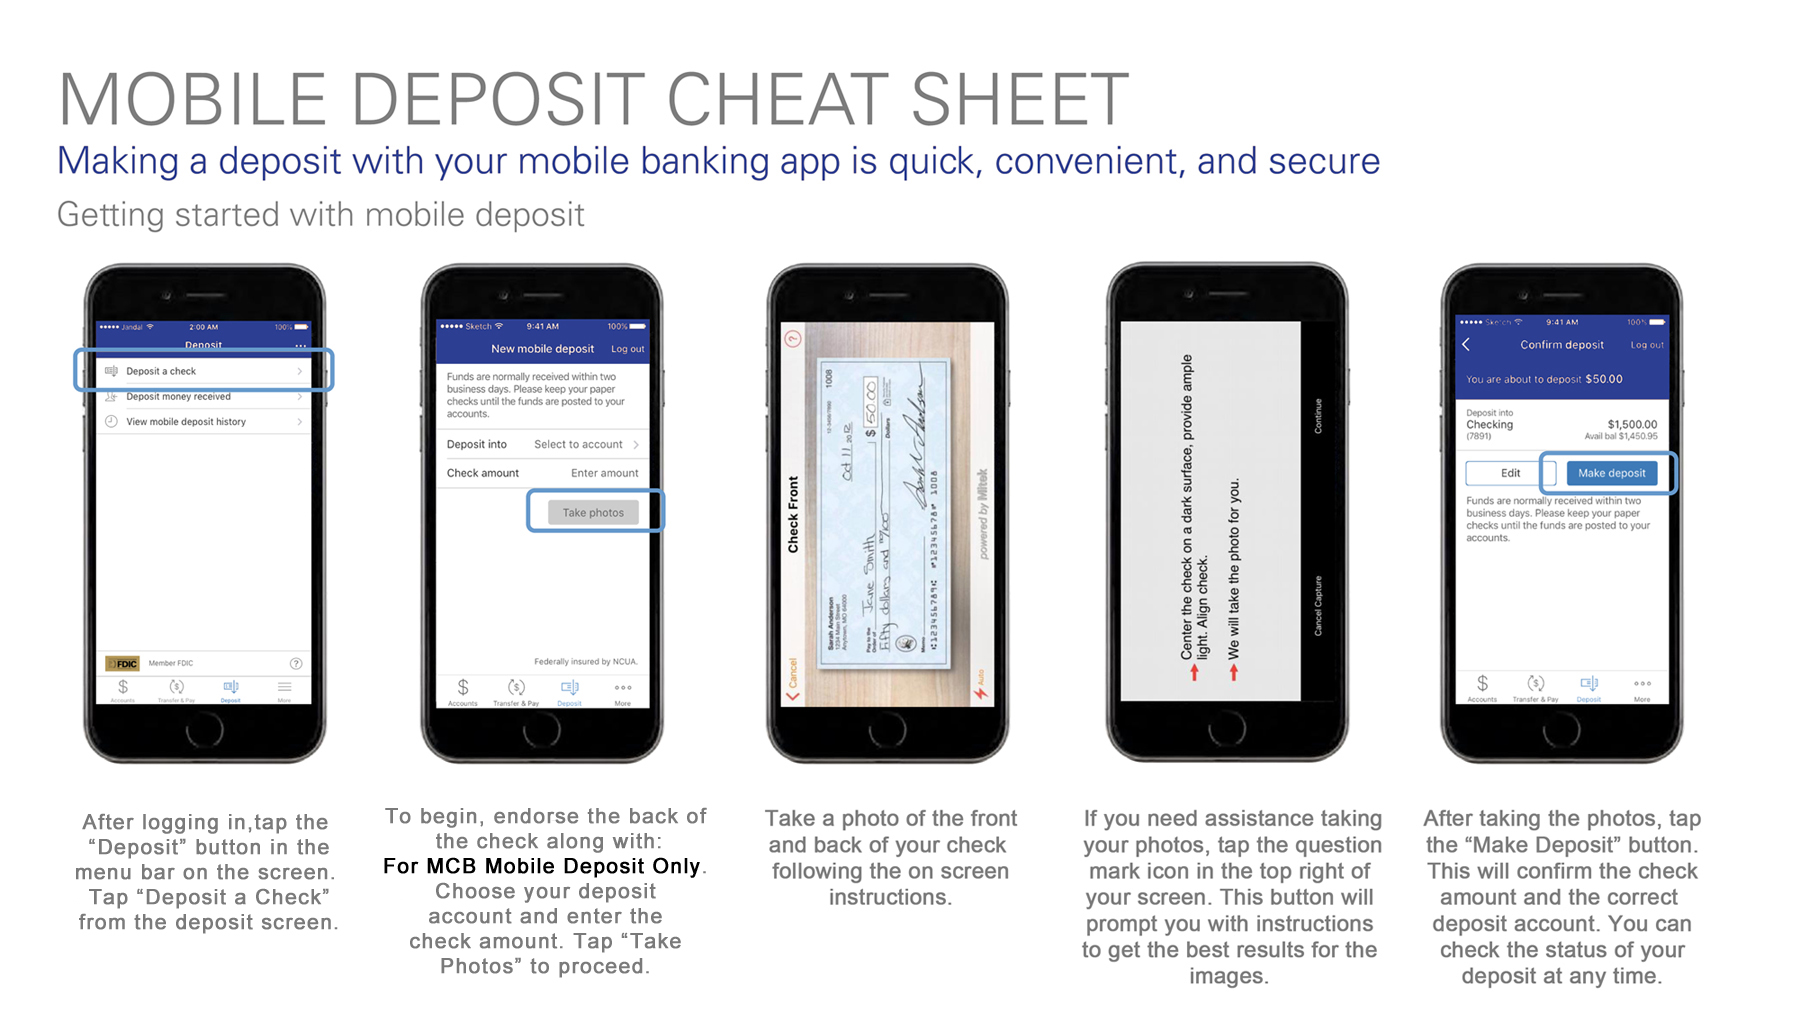 Mobile Deposit Cheat Sheet